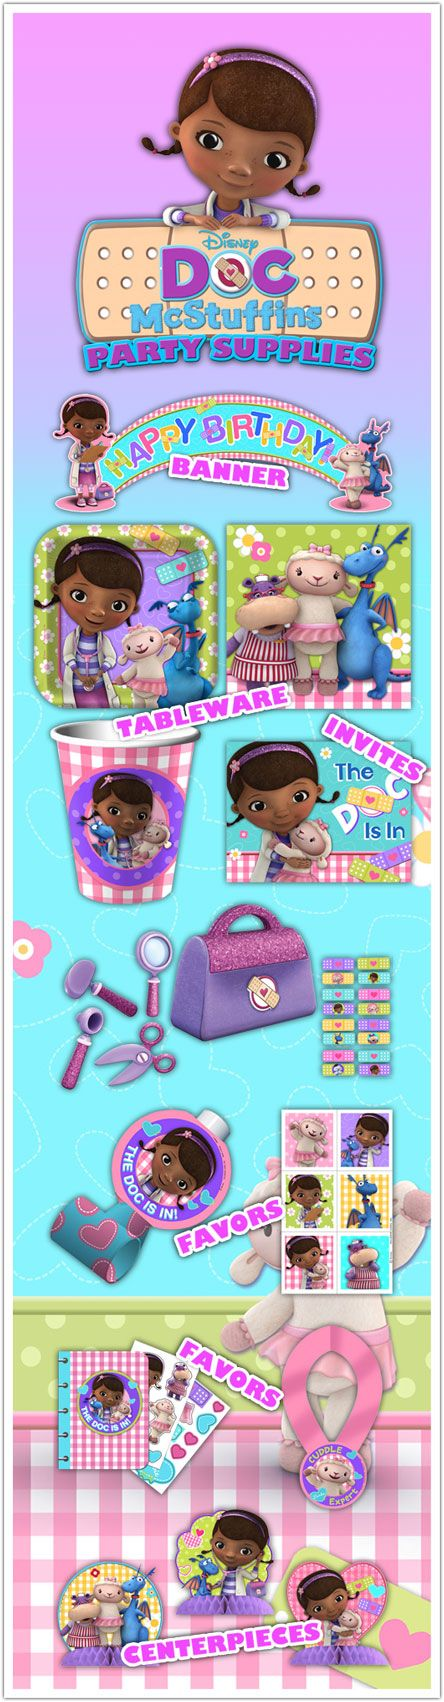 Doc McStuffins Party Supplies Sneak Peek from www.DiscountPartySupplies.com. Coming this June to a birthday party near you!